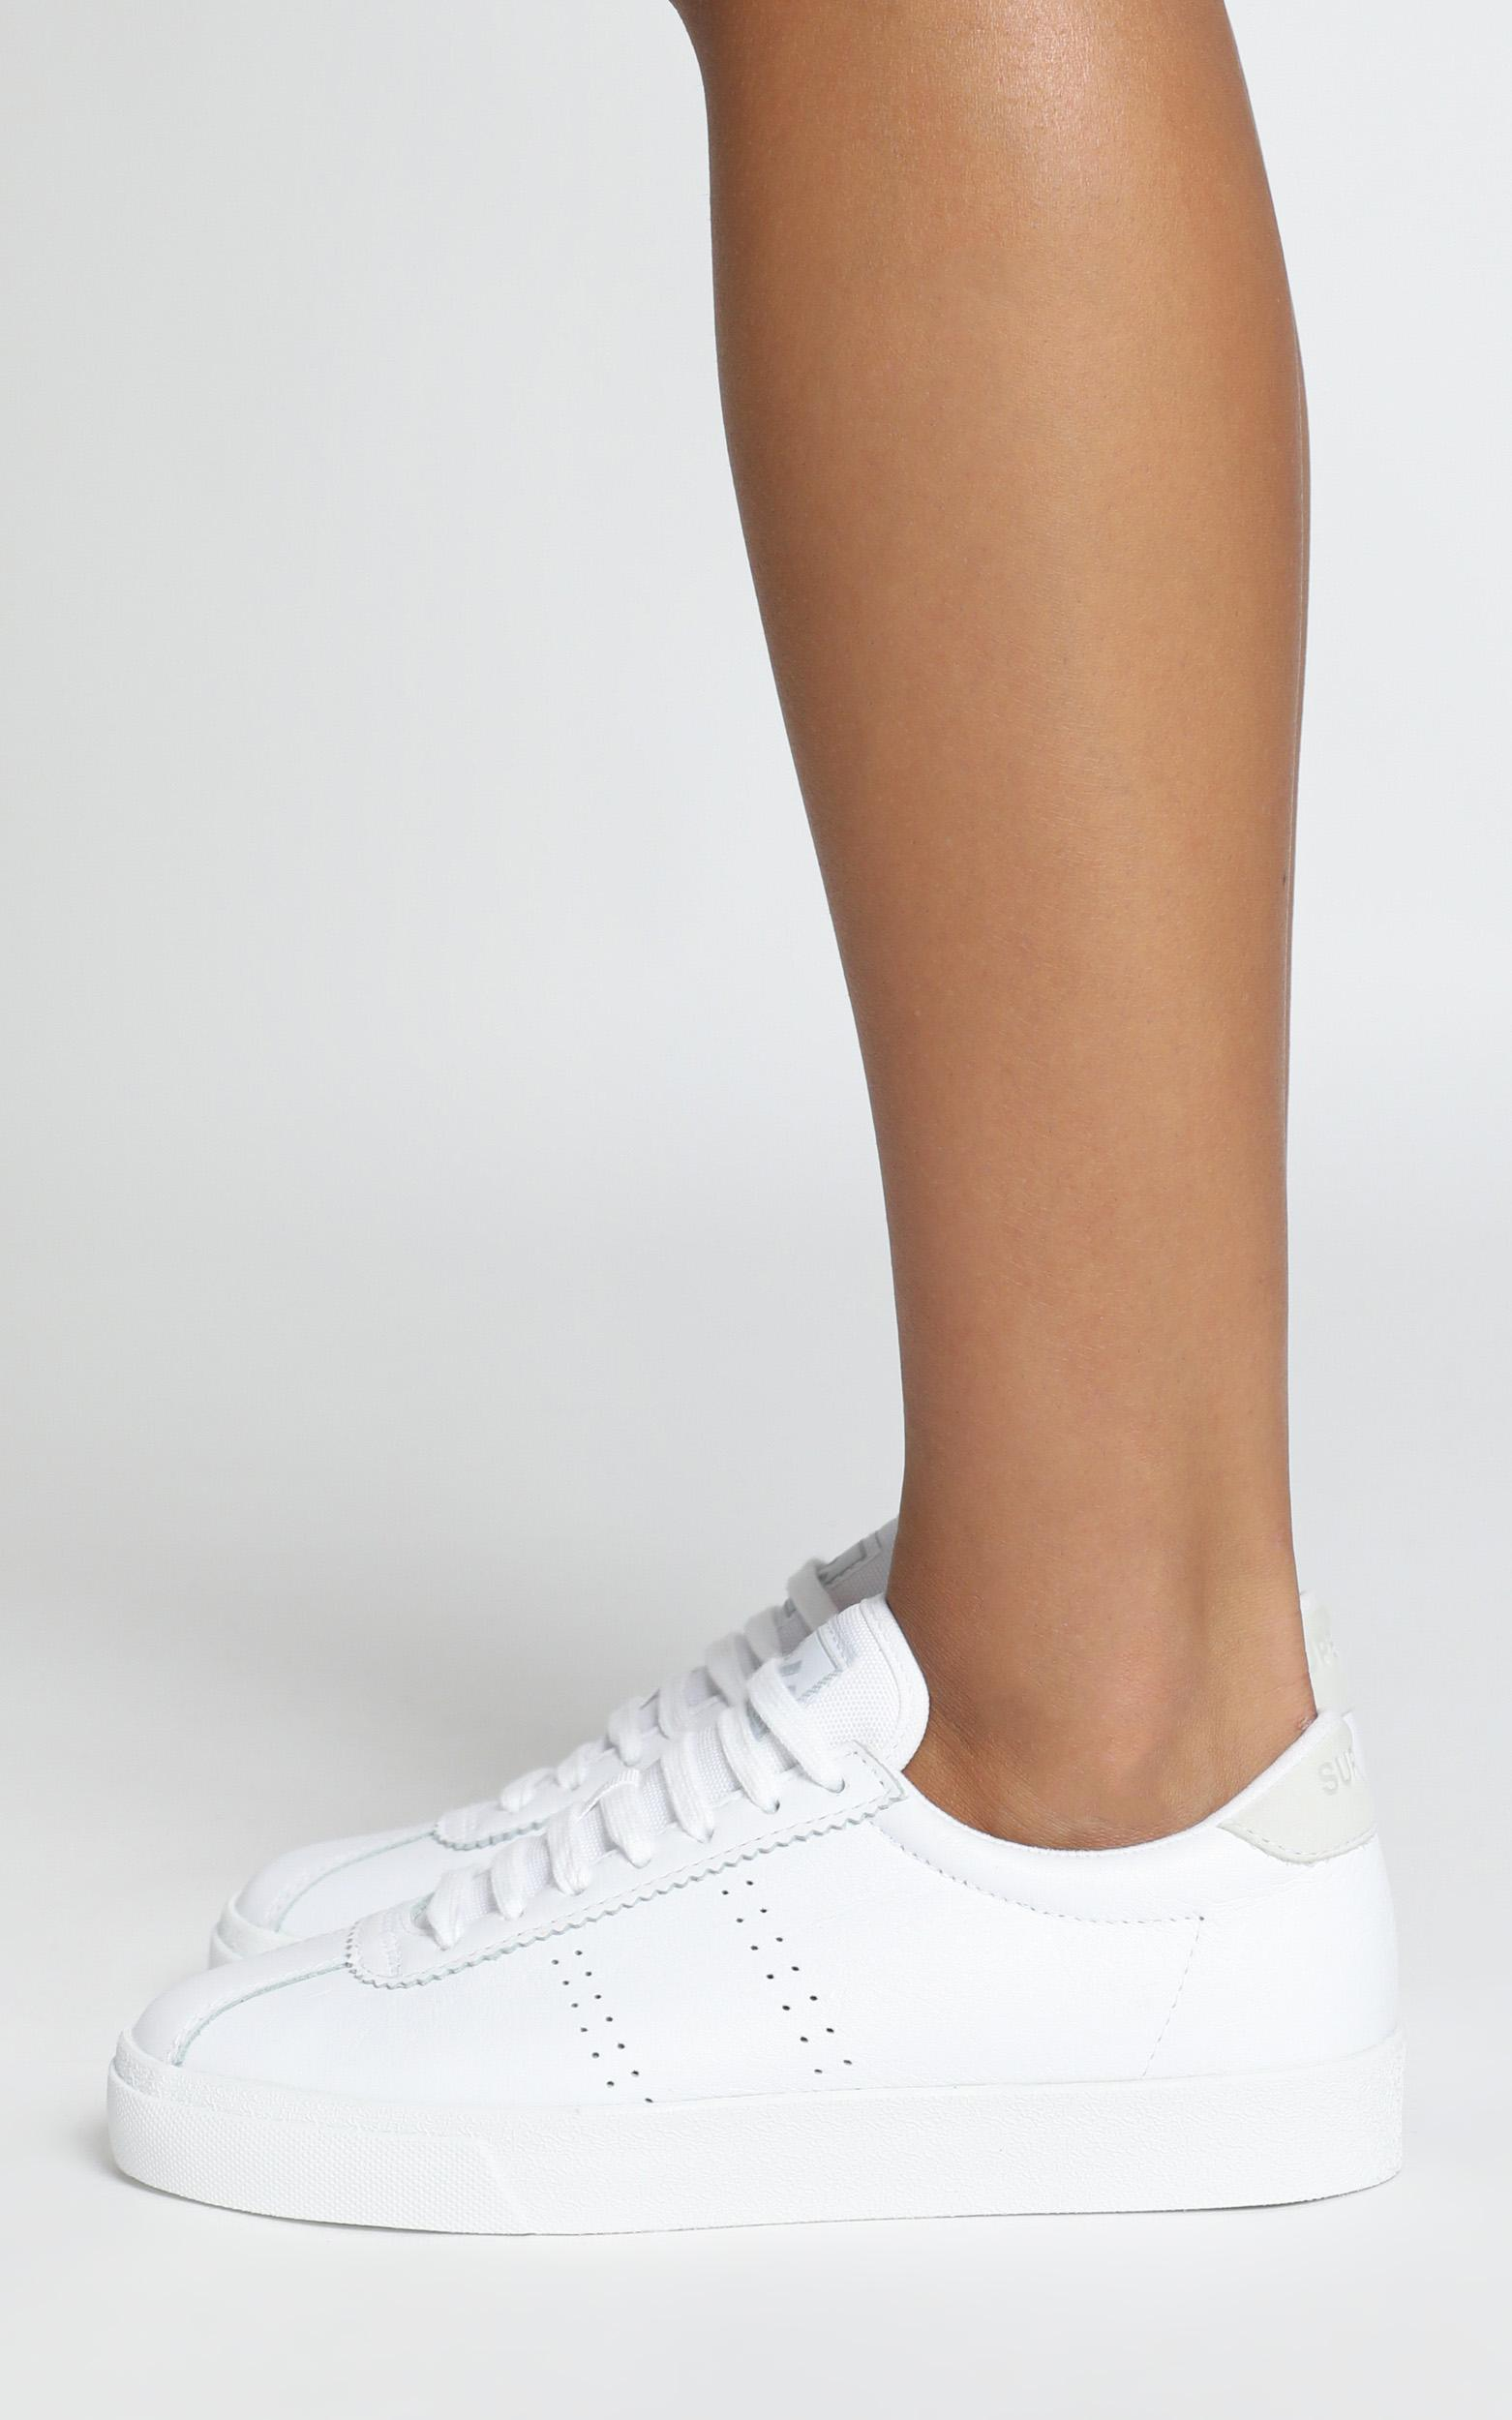 Superga - 2843 Clubs Comfleau in white leather - 10, White, hi-res image number null